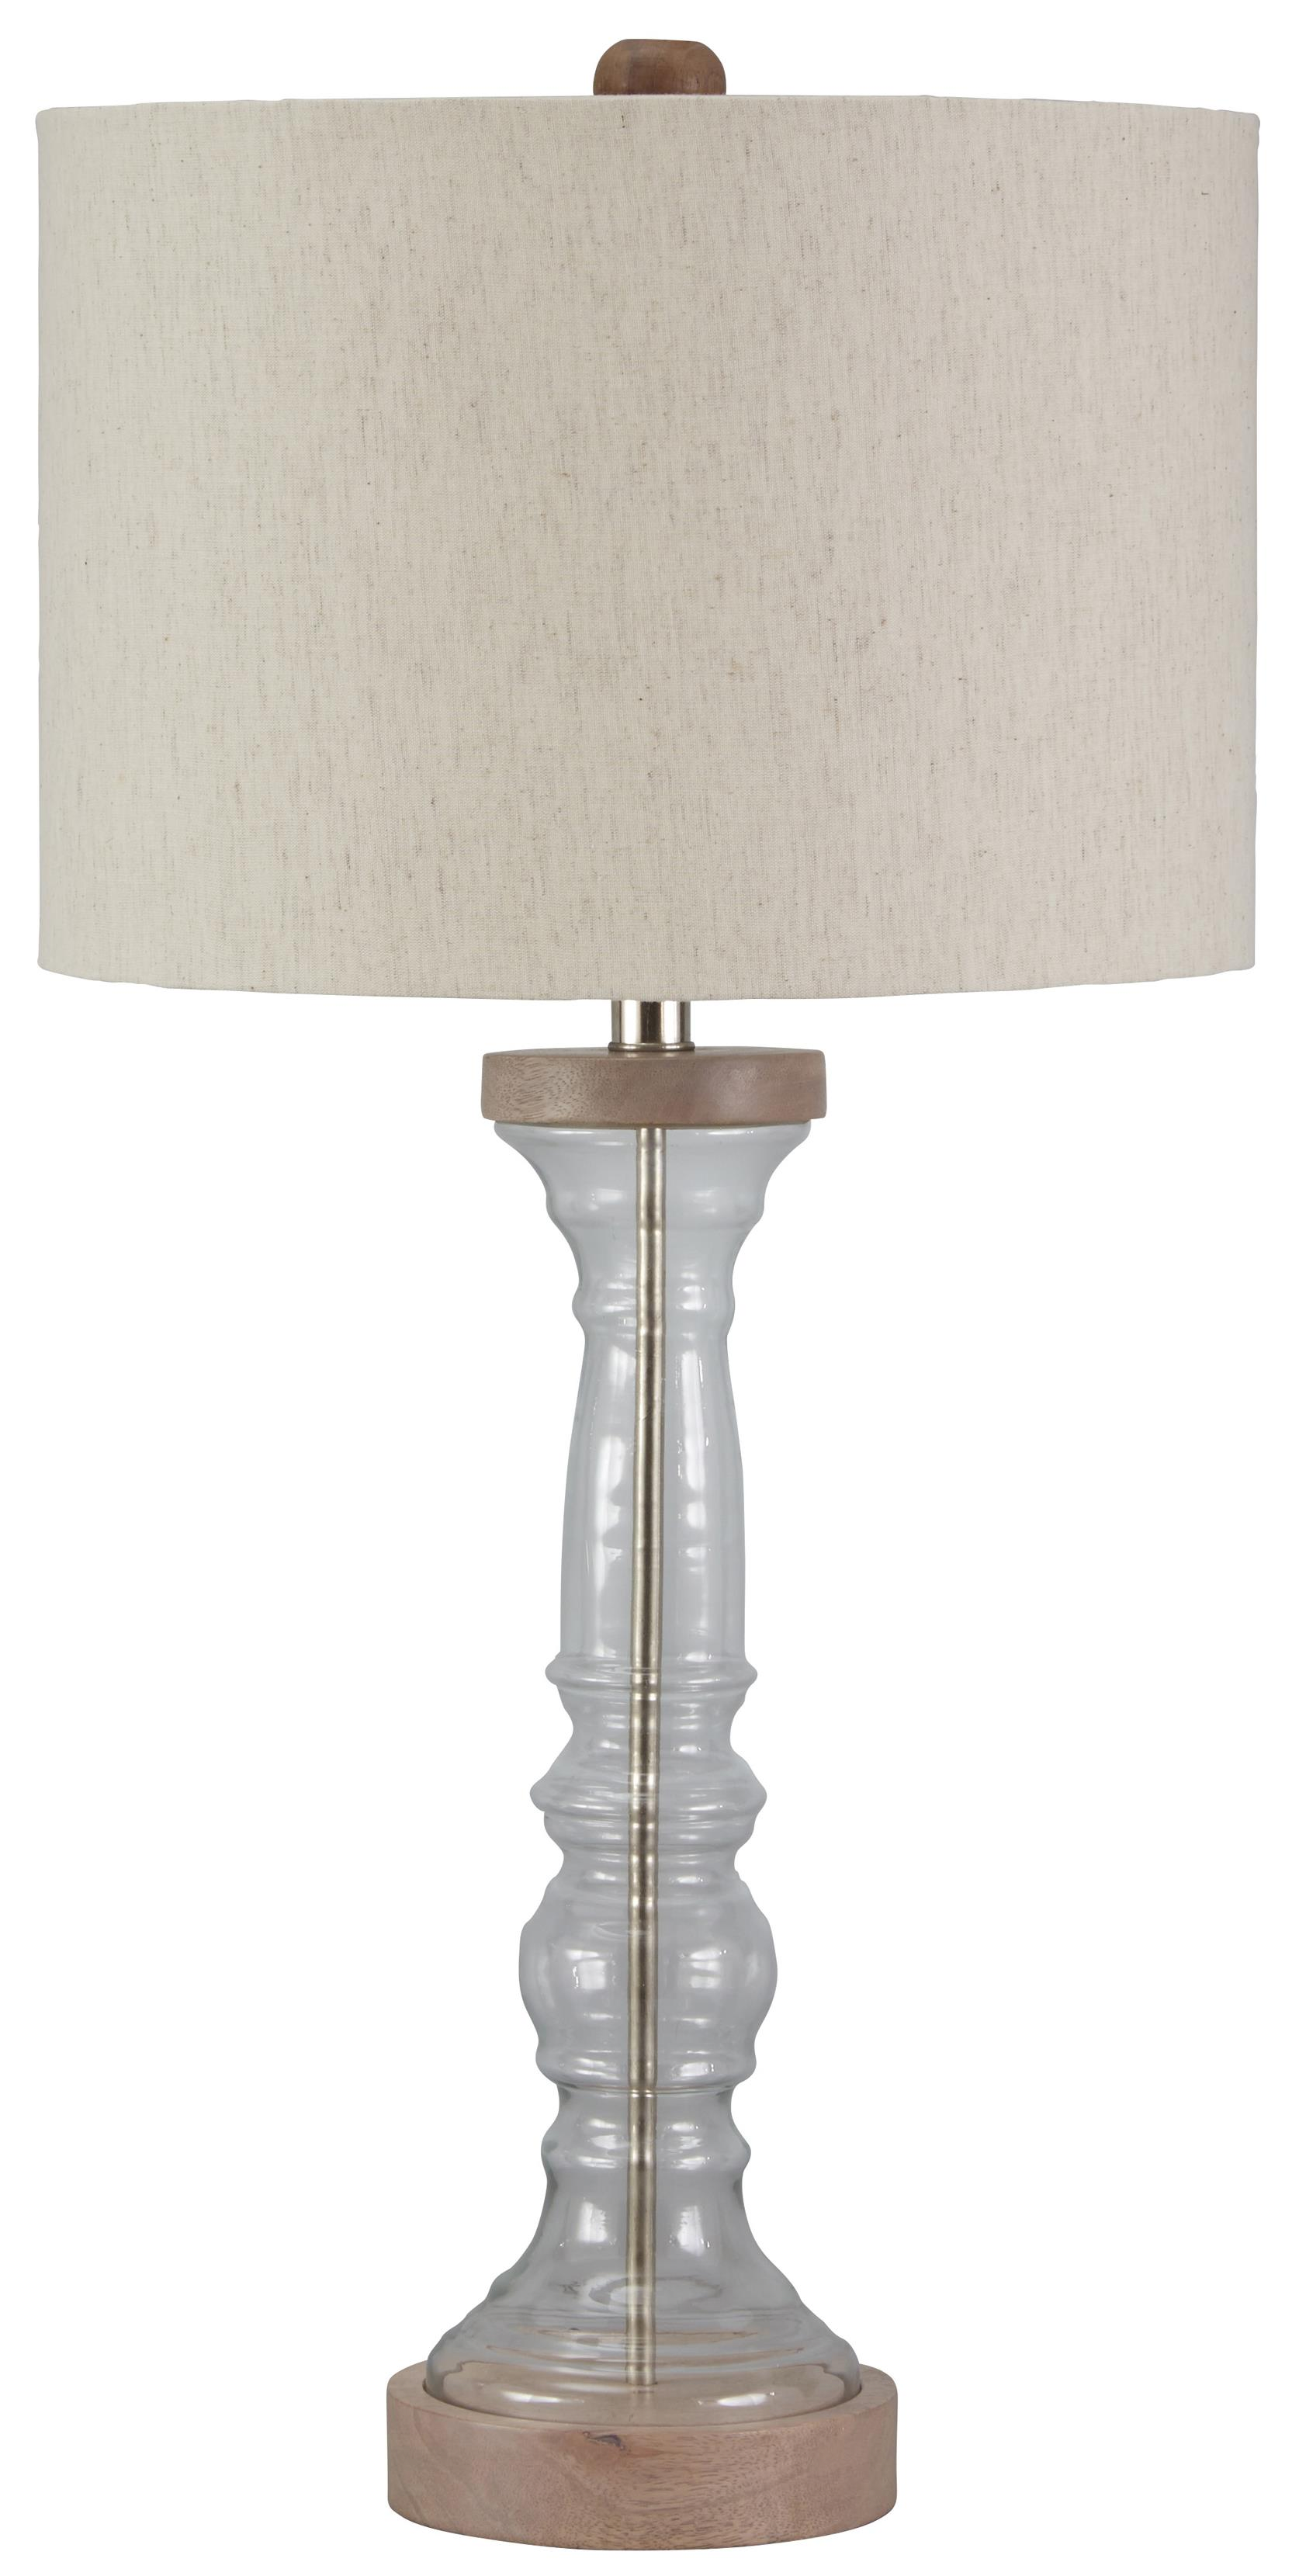 Signature Design by Ashley Lamps - Vintage Style Tad Glass Table Lamp - Item Number: L430254